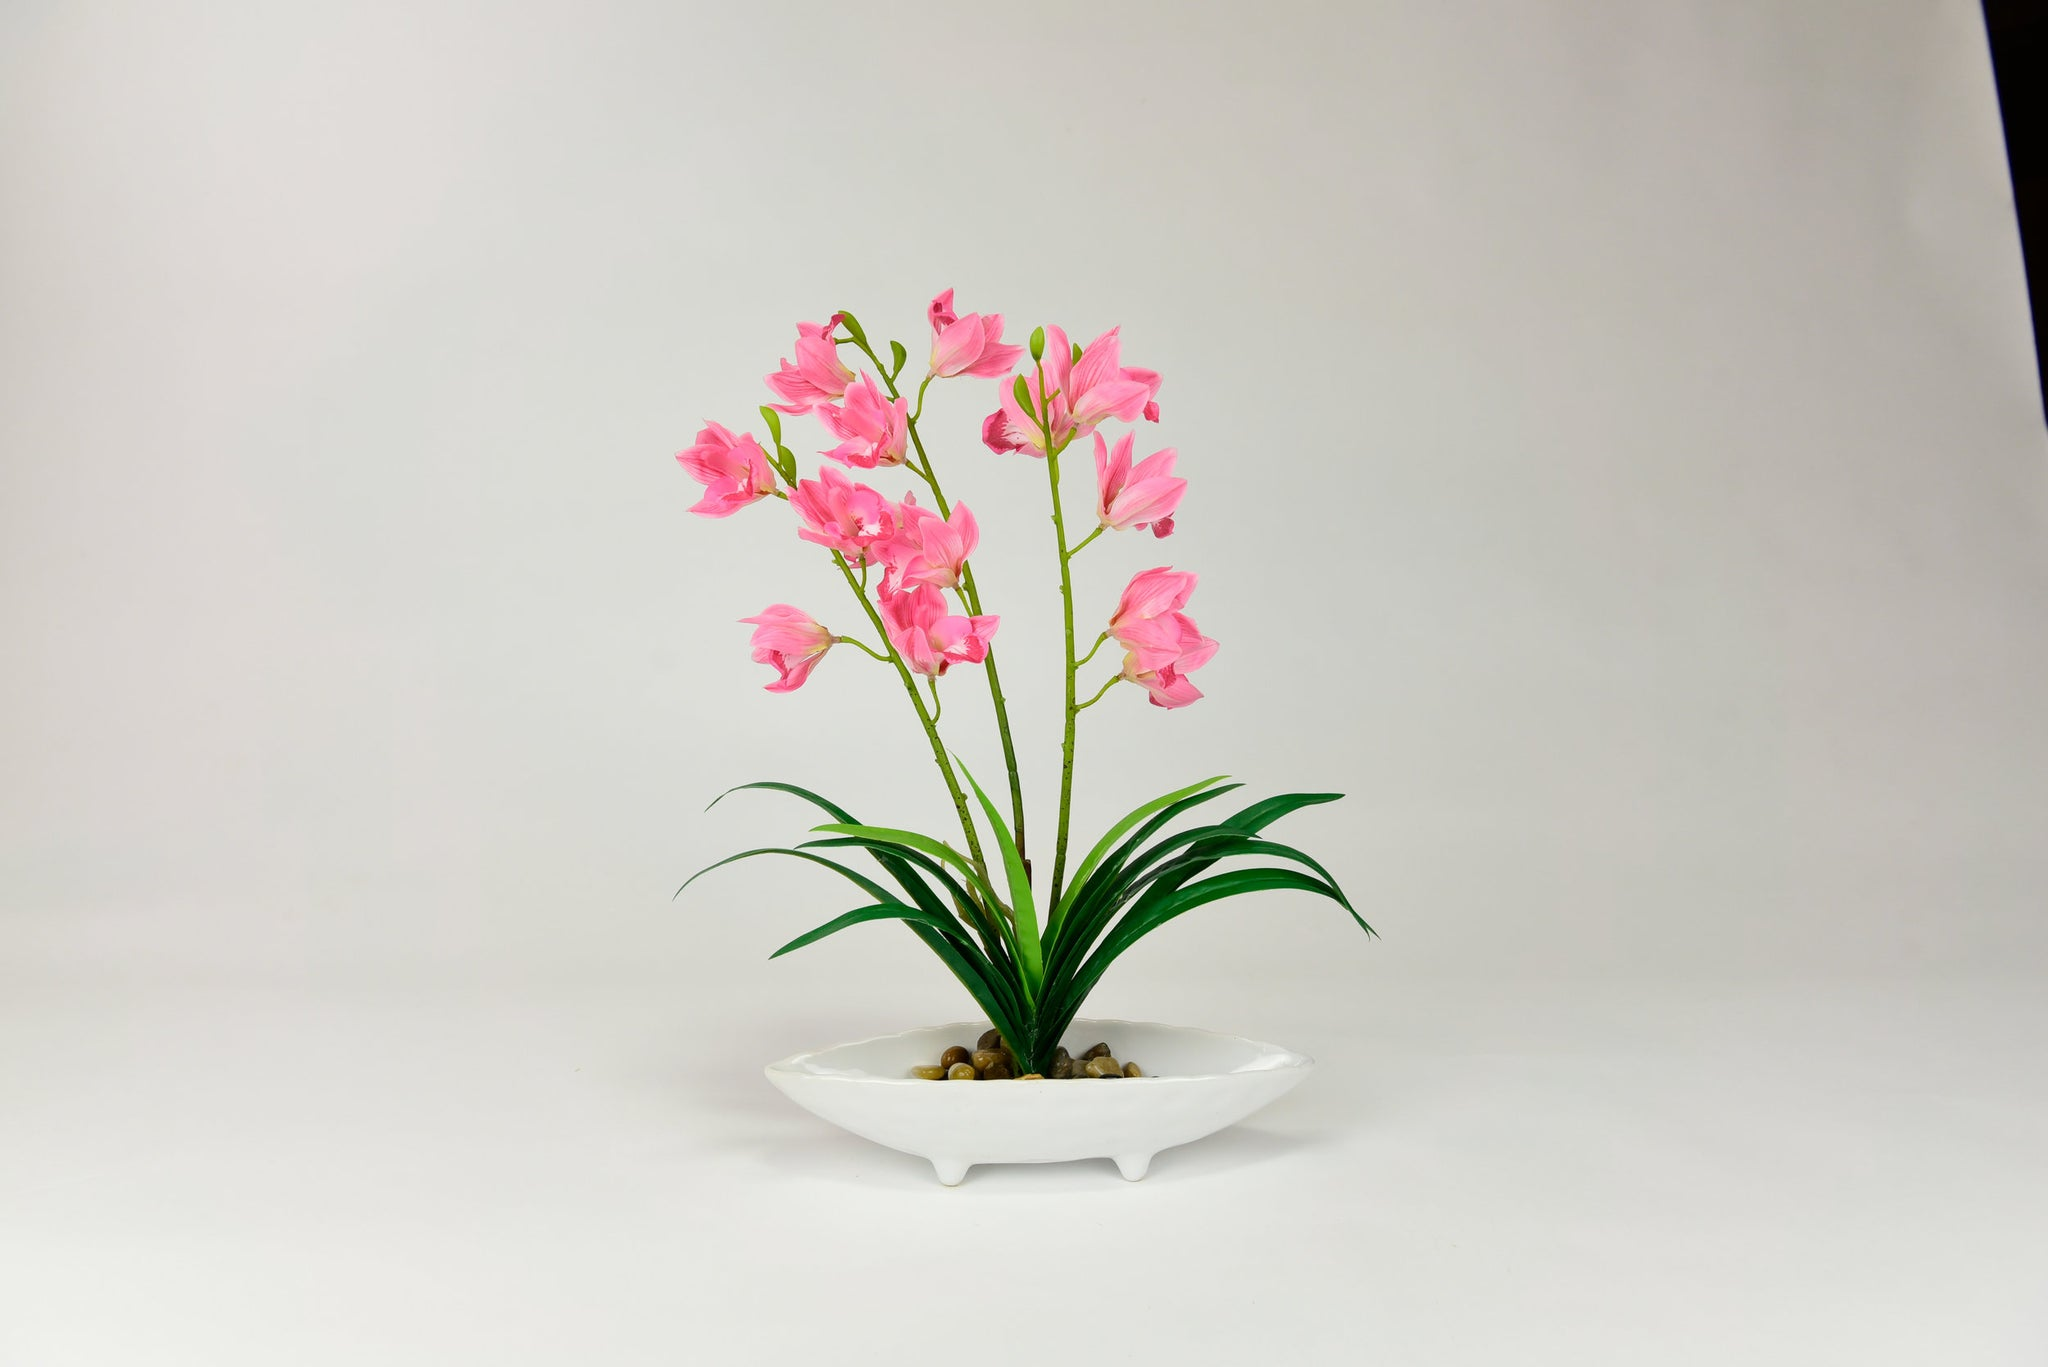 Pink Amaryllis Flowers with Shallow White Pot